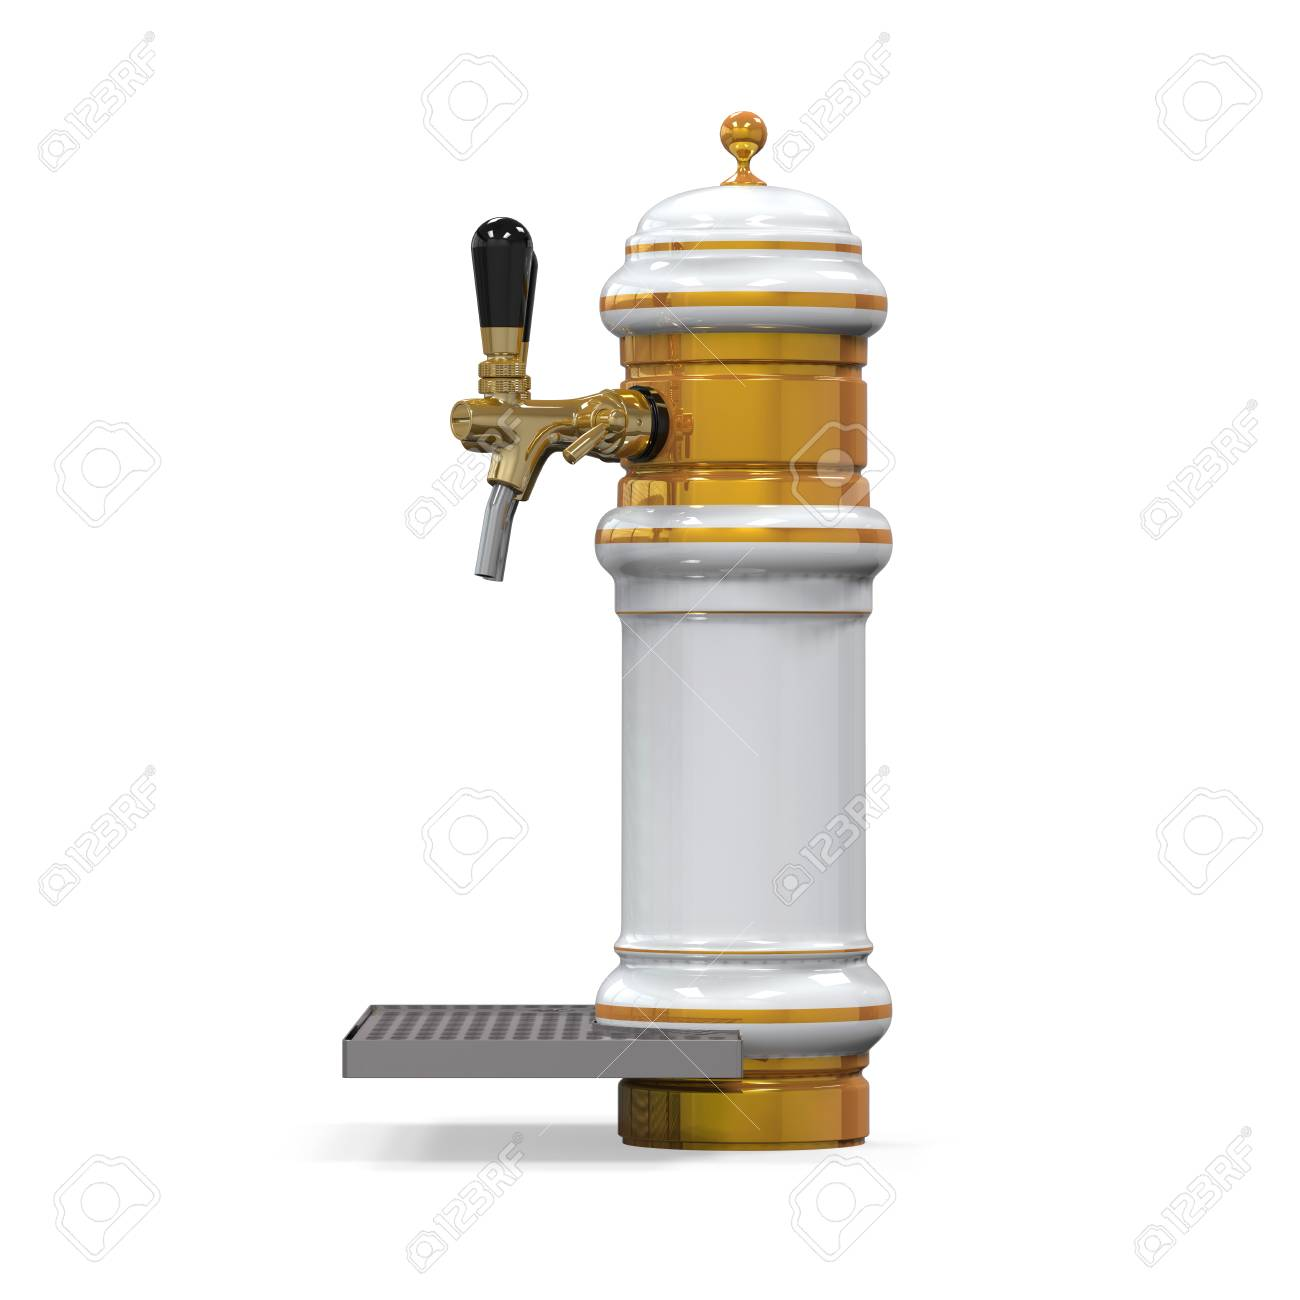 Beer Tap Isolated Stock Photo - 24566078